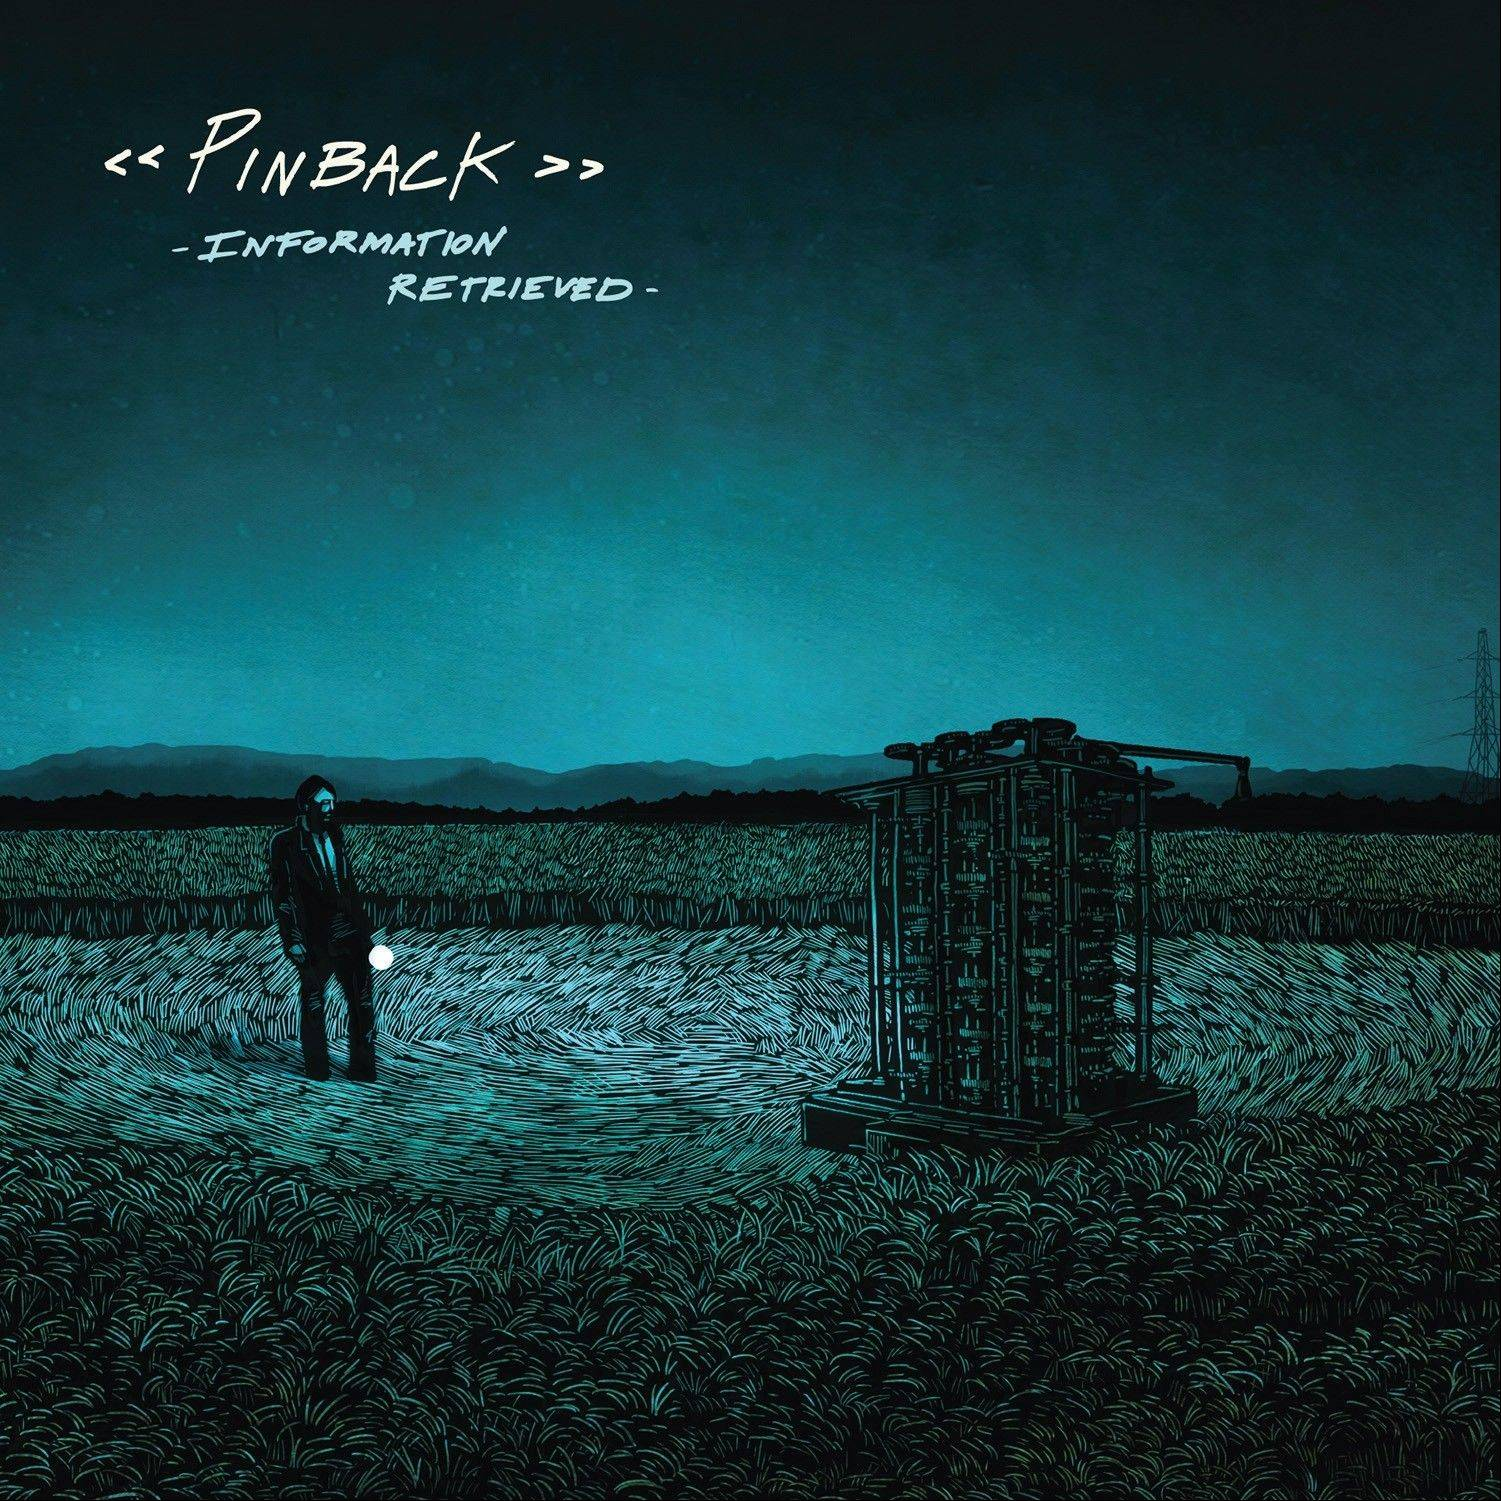 Pinback, �Information Retrieved�